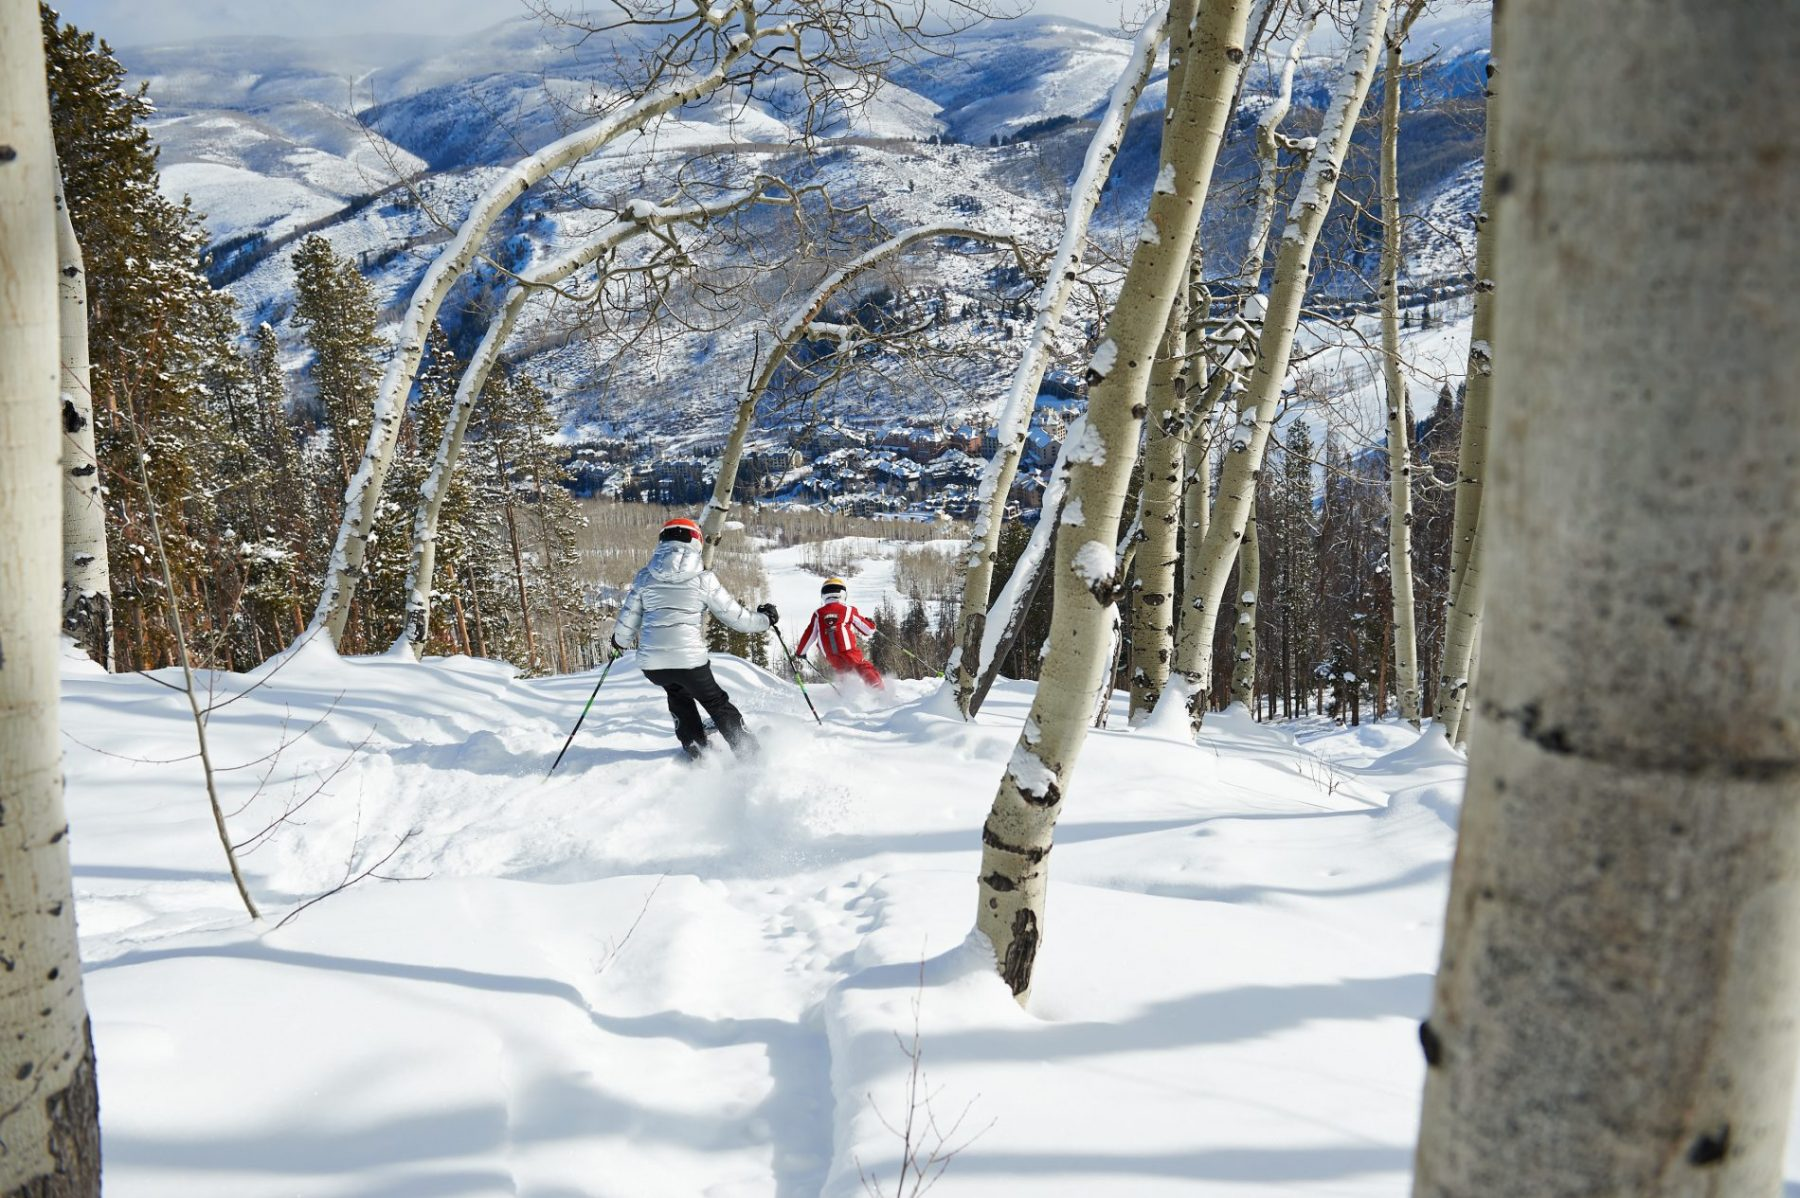 The EagleVail chairlift to Beaver Creek was not accepted by the